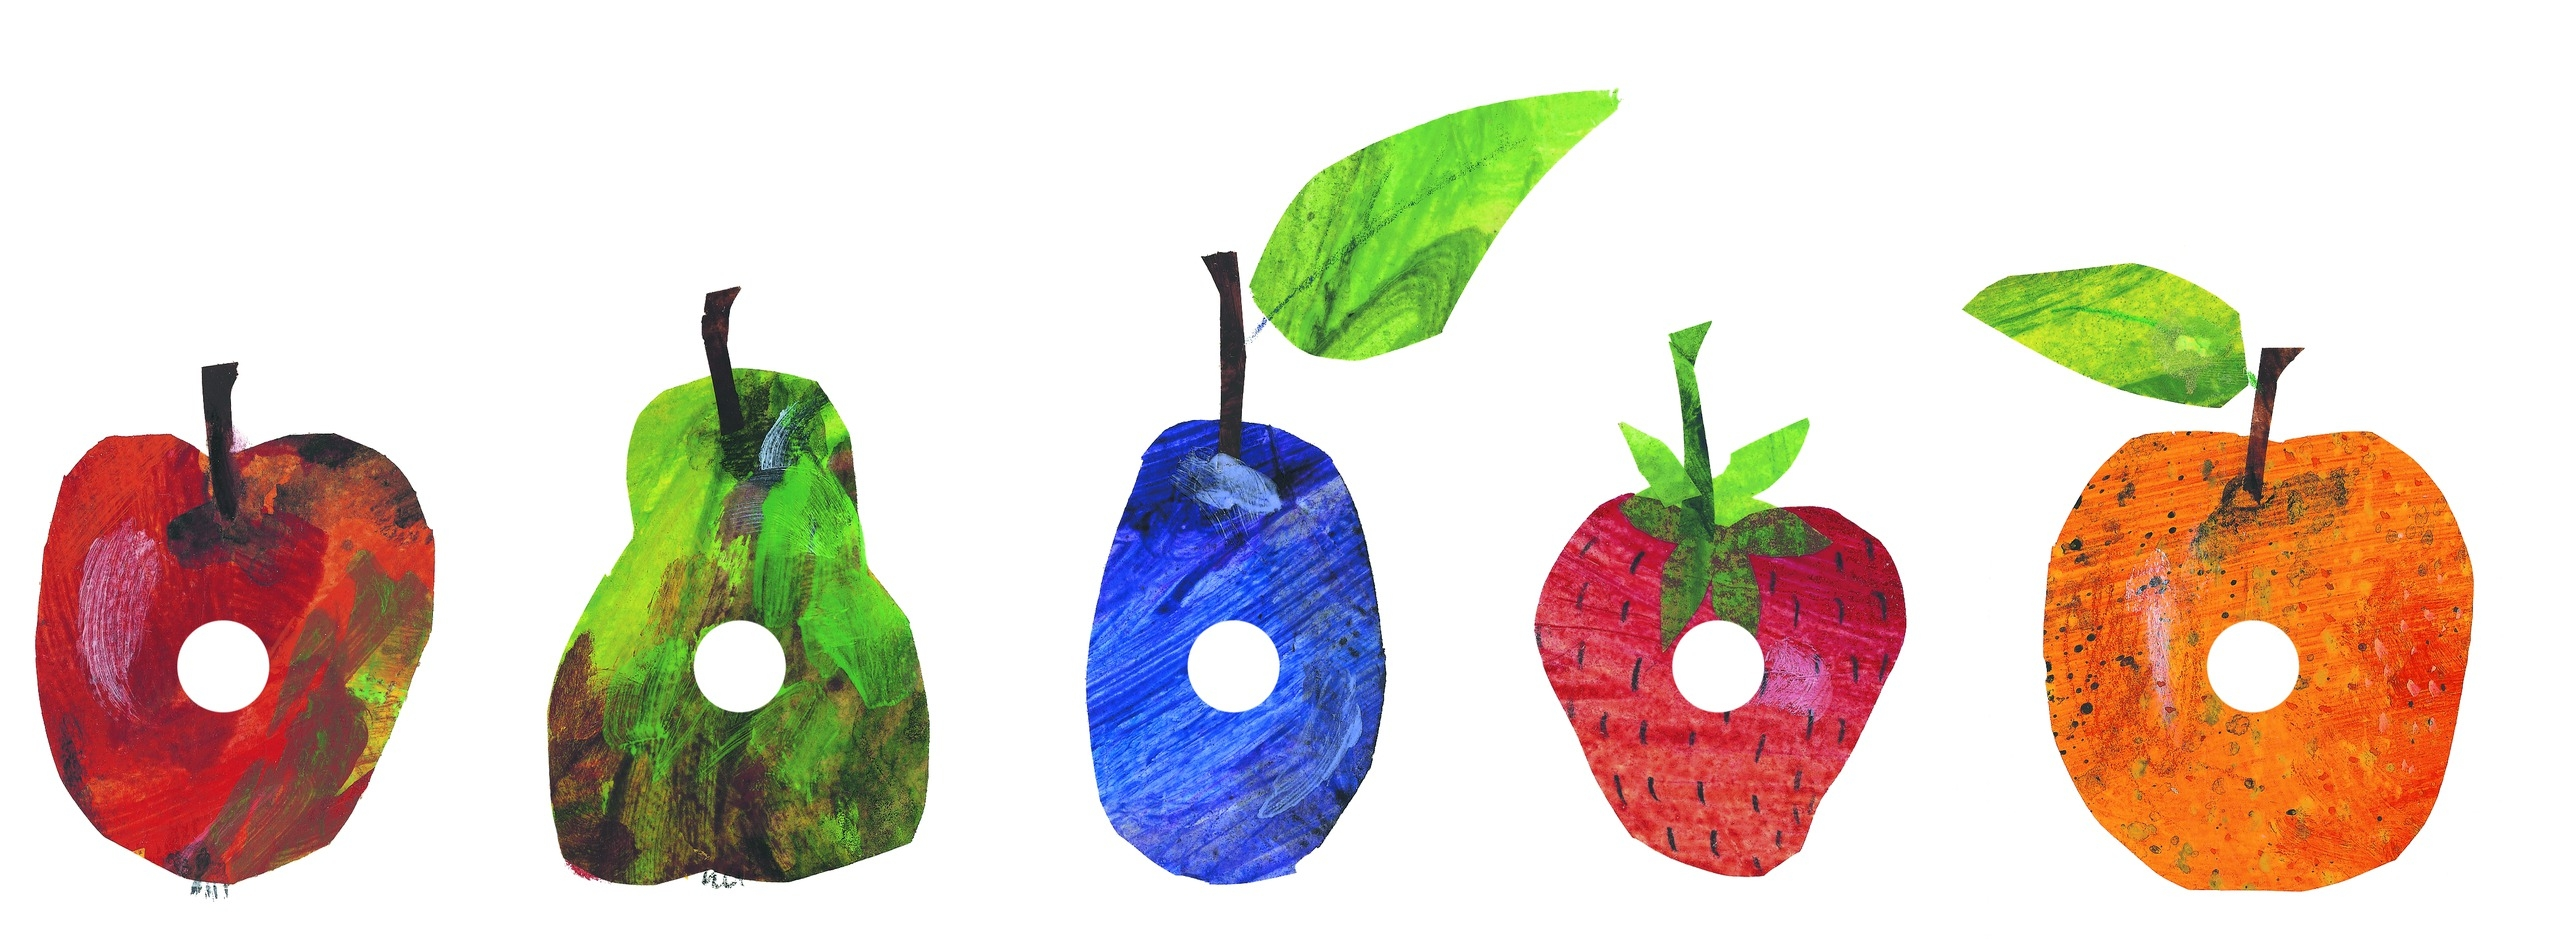 Plum clipart hungry caterpillar Very Hungry Plum Hungry Pix